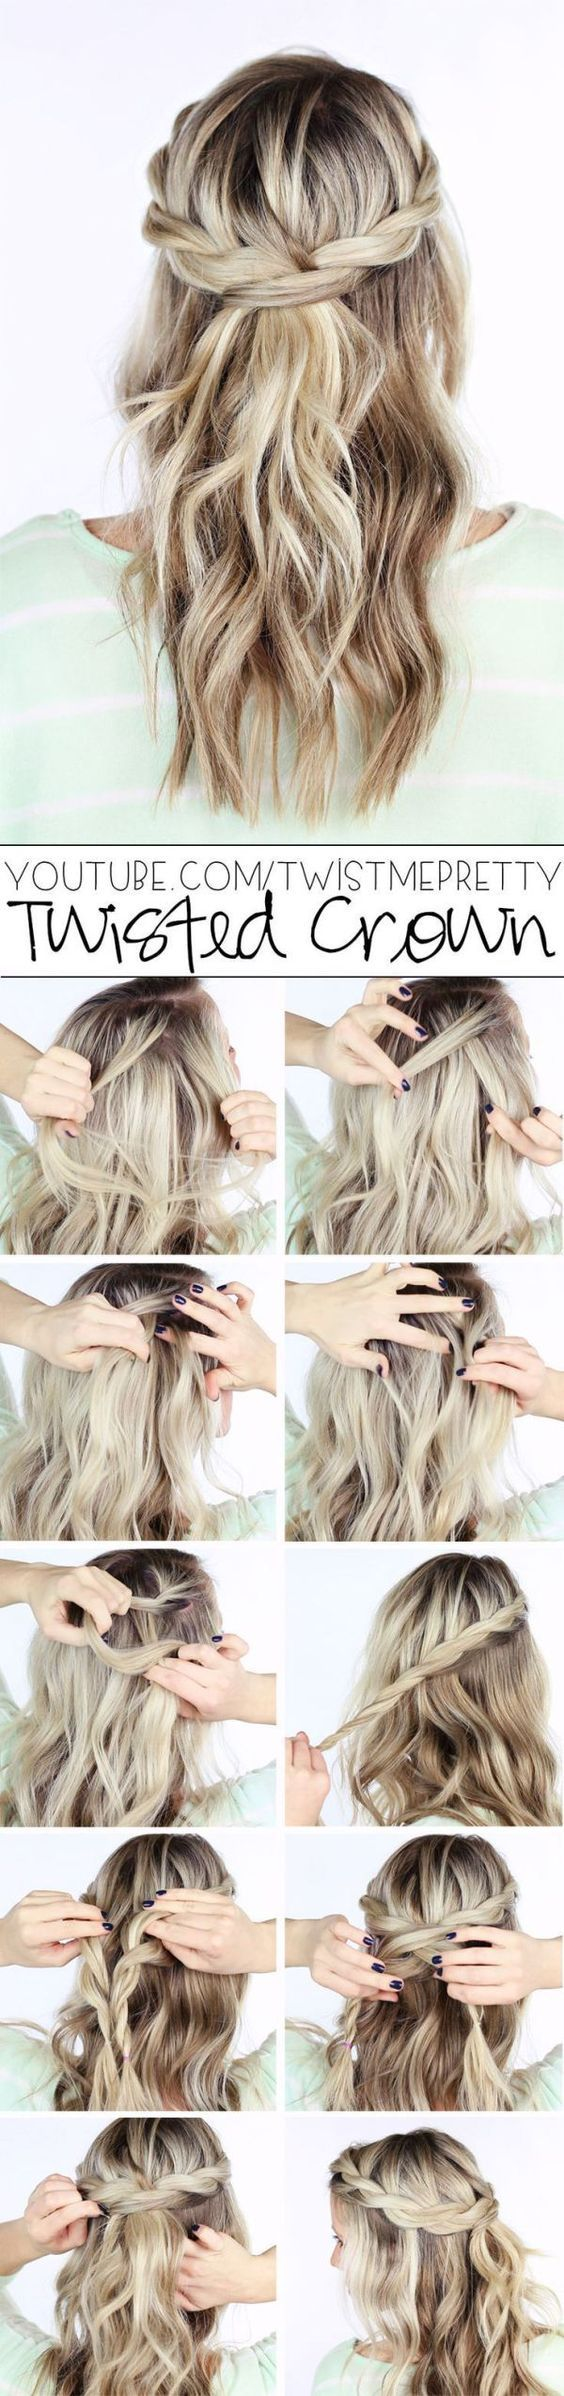 15 Easy Yet Trendy Hairstyles for Lazy Women